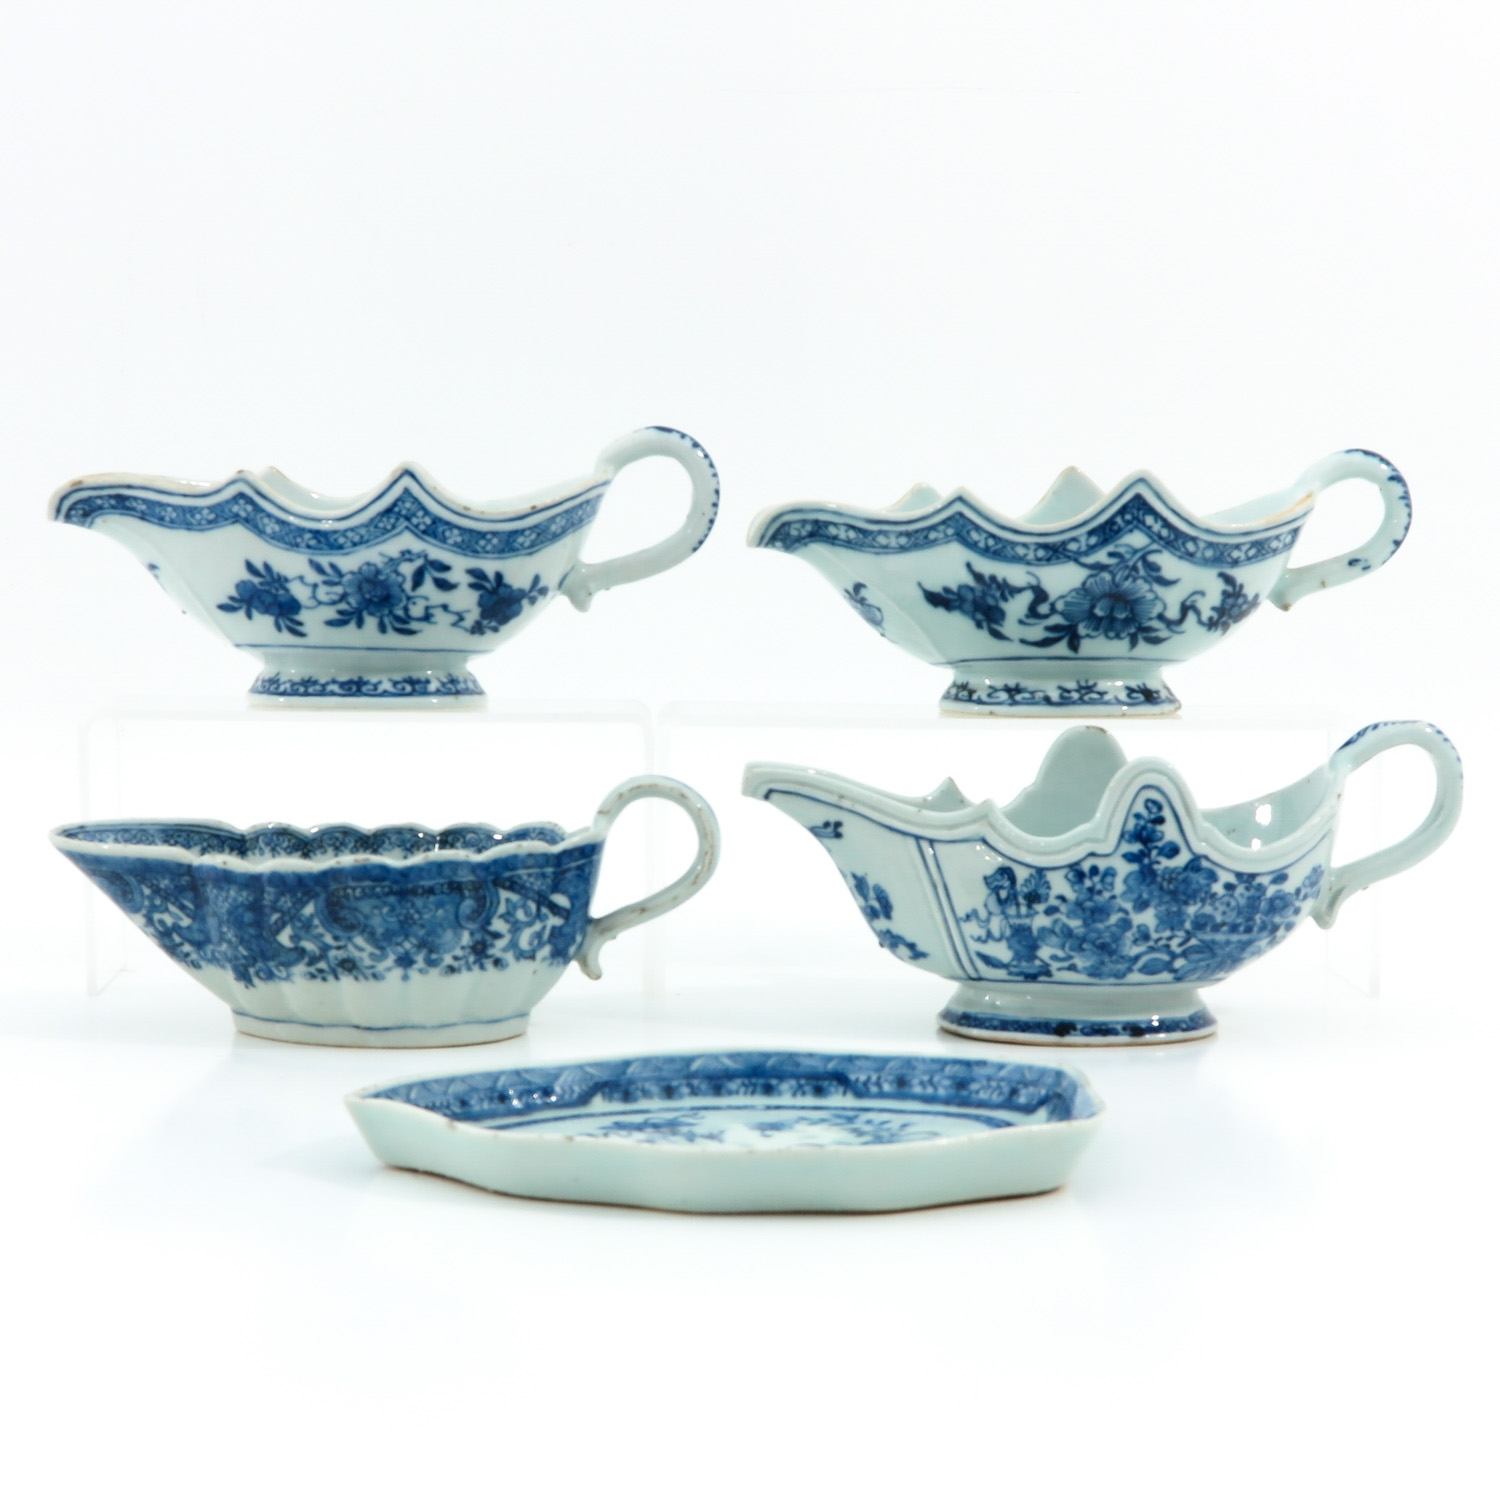 A Collection of Export Porcelain